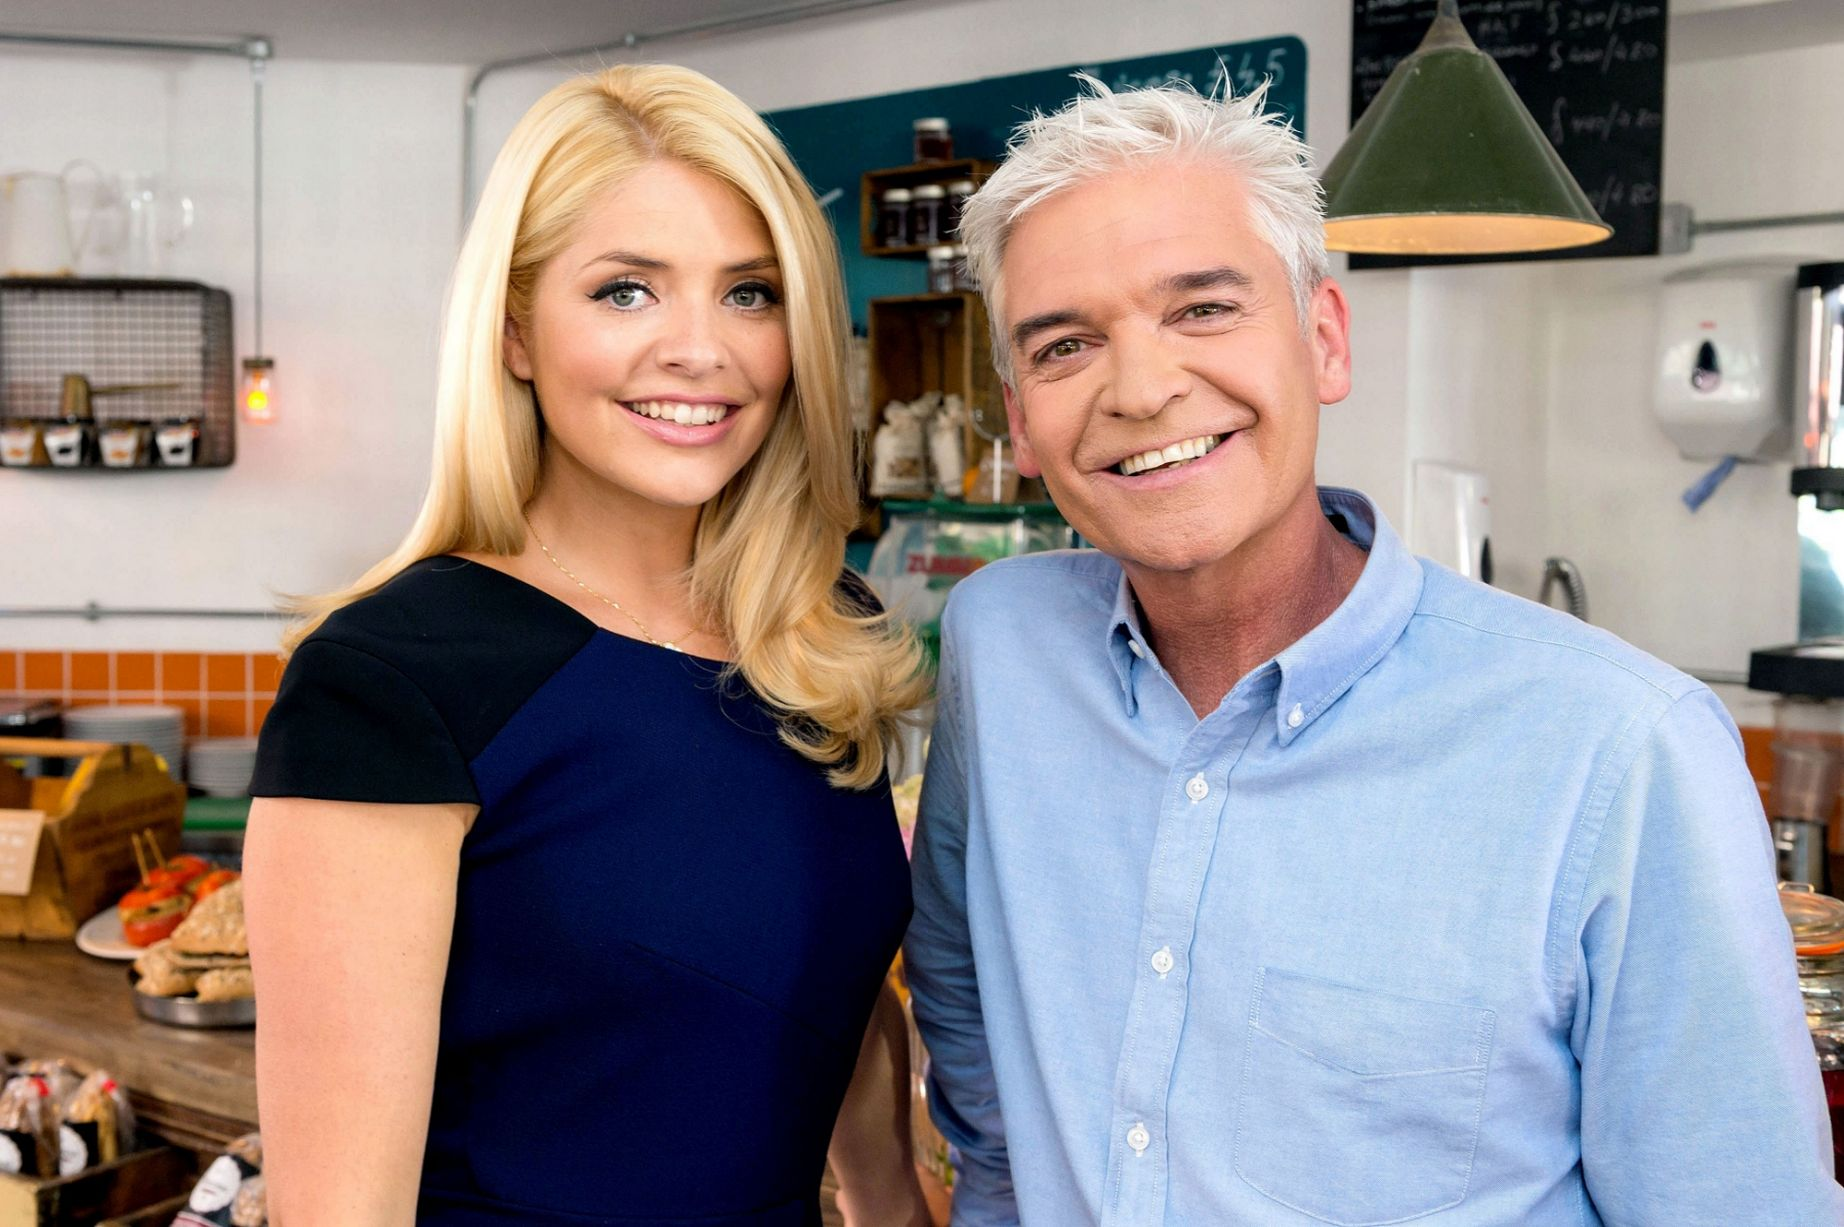 Holly-Willoughby-behind-the-scenes-at-the-making-of-the-new-This-Morning-promo